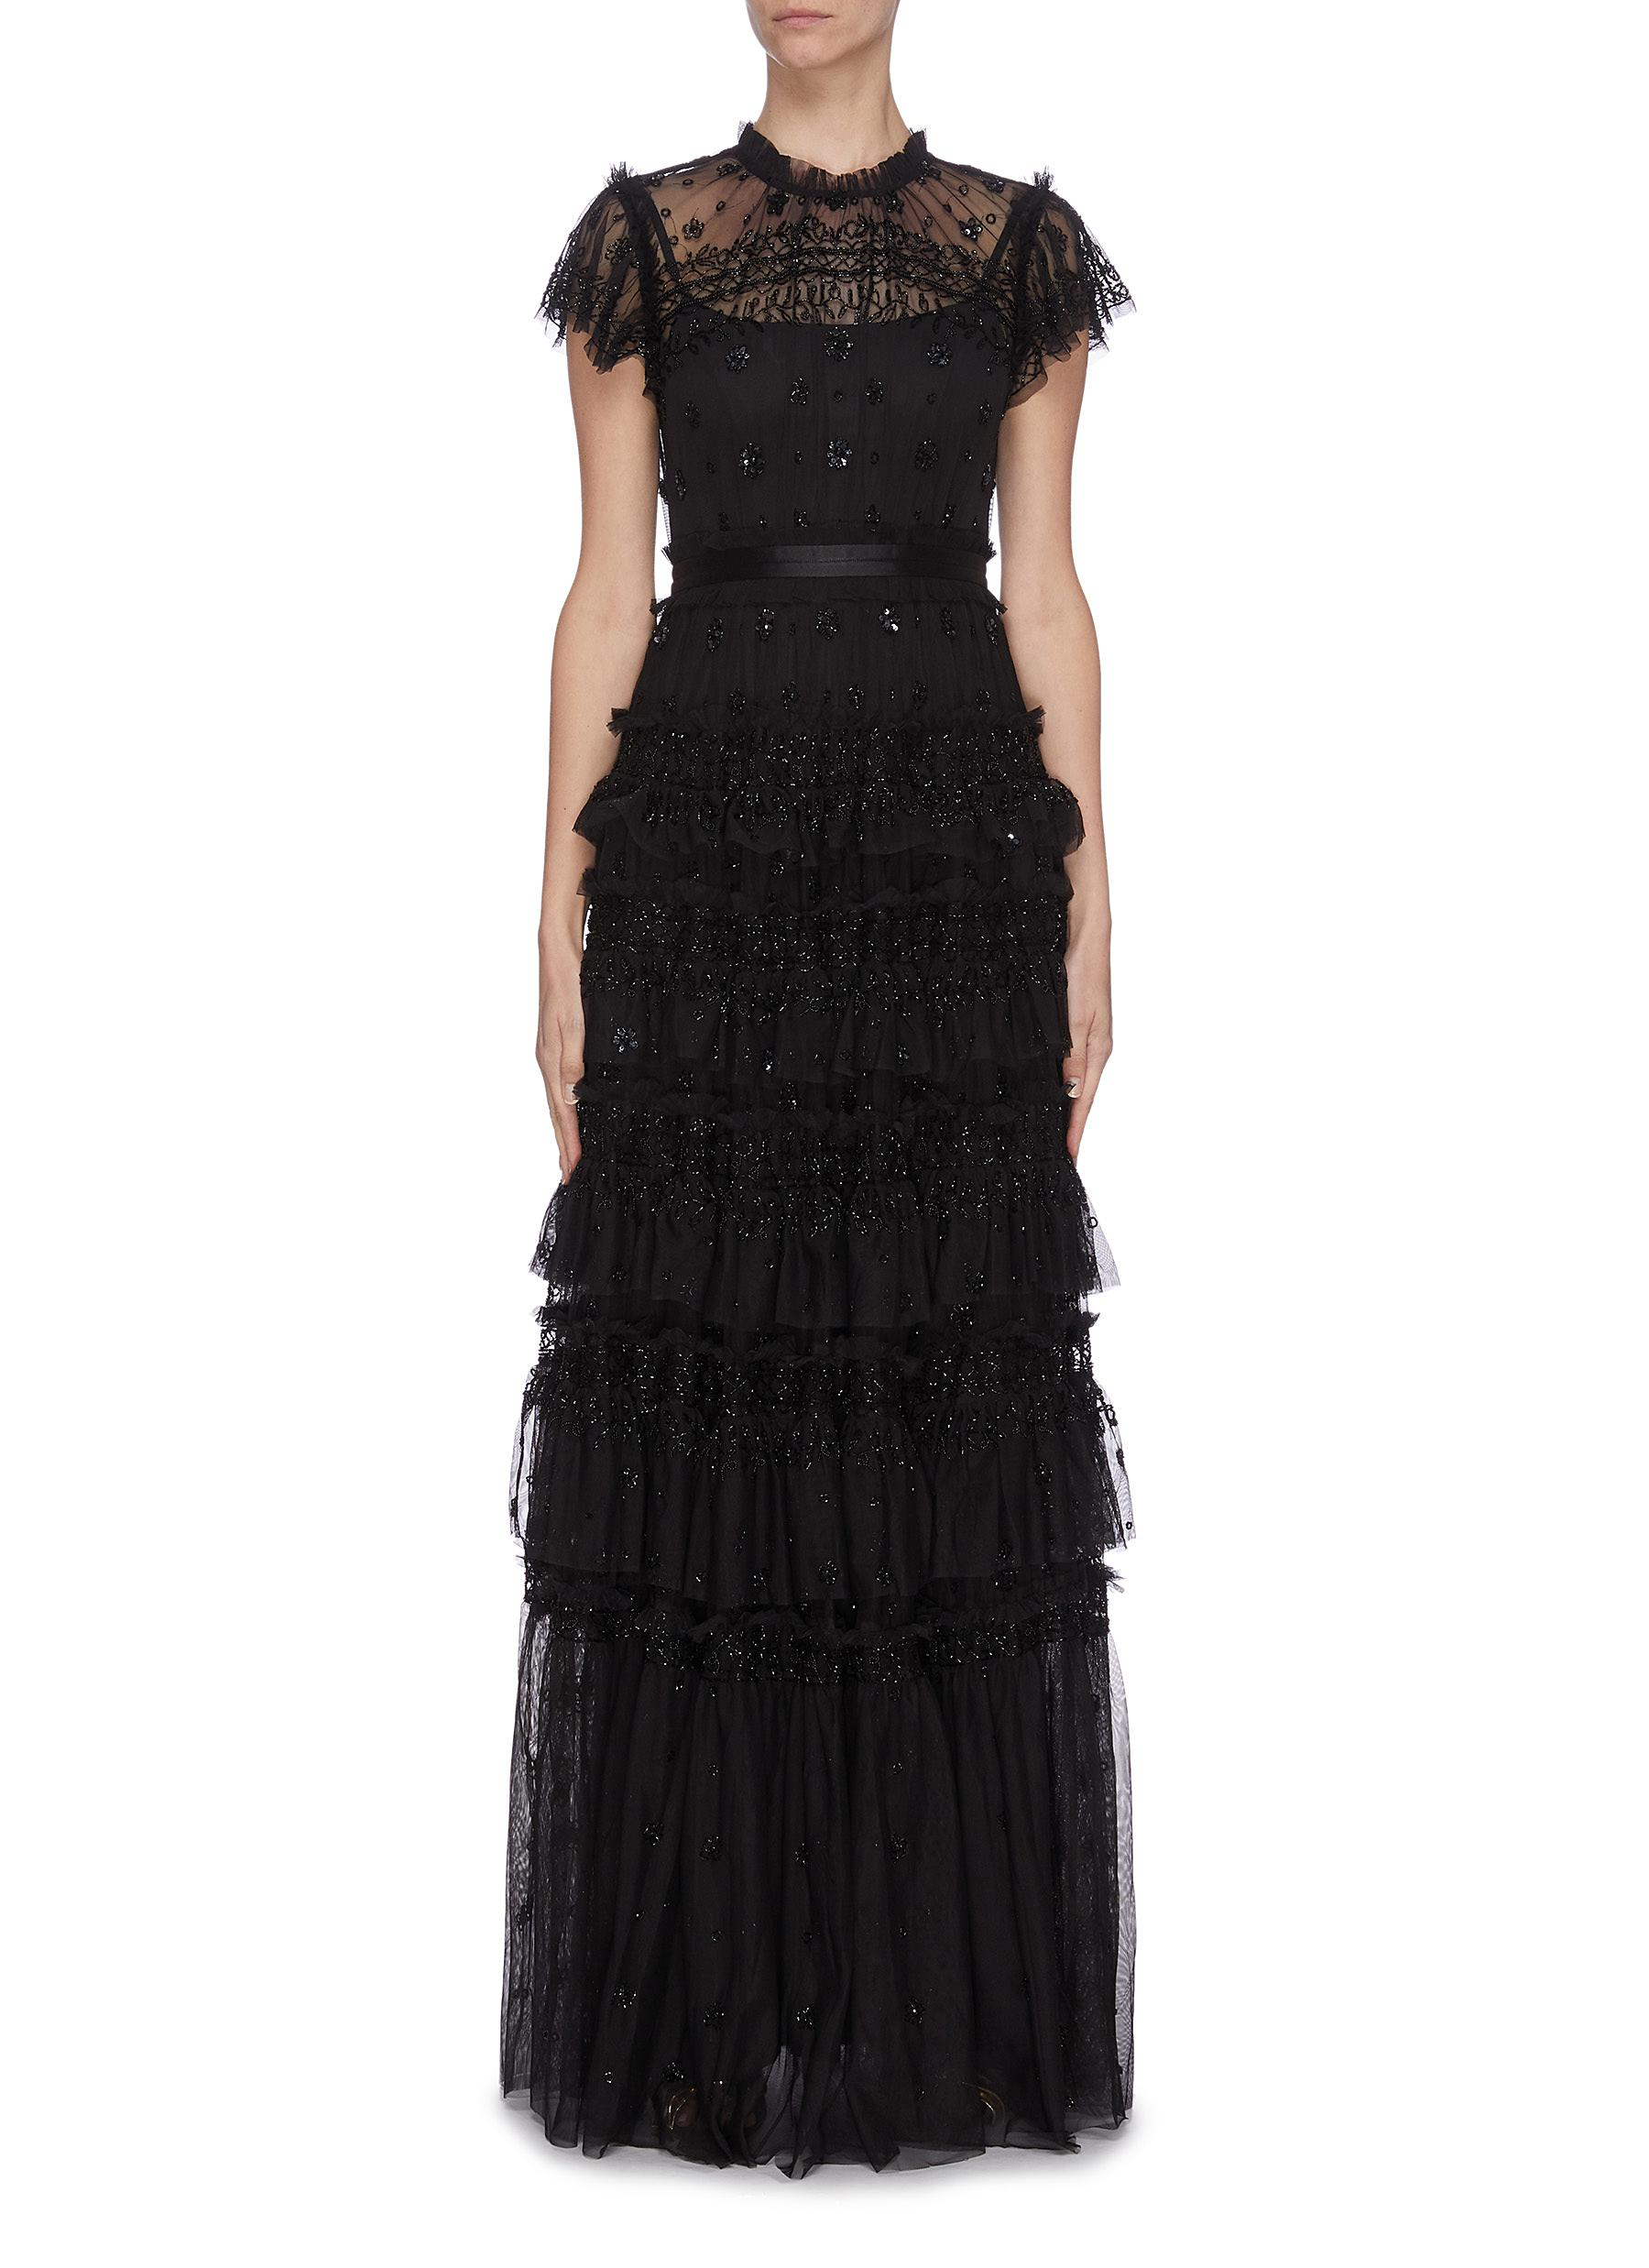 Buy Needle & Thread Dresses 'Andromeda' sequin embellished lace trim ruffle tiered tulle gown